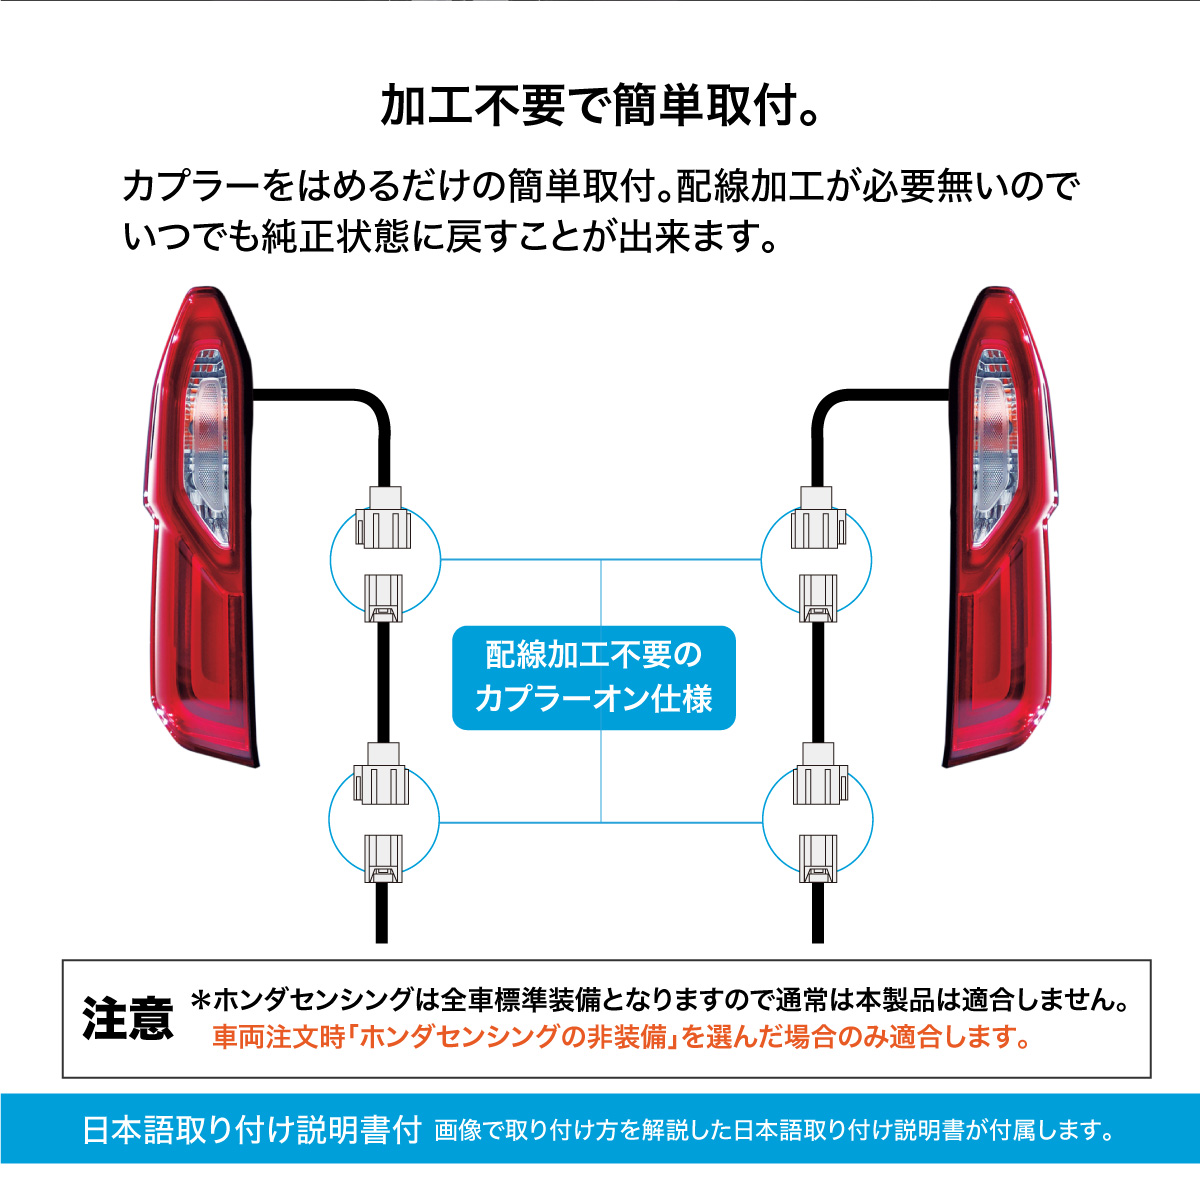 chastity a car diagram krosslink it is prevention of tail lamp rear stop lamp rear end  it is prevention of tail lamp rear stop